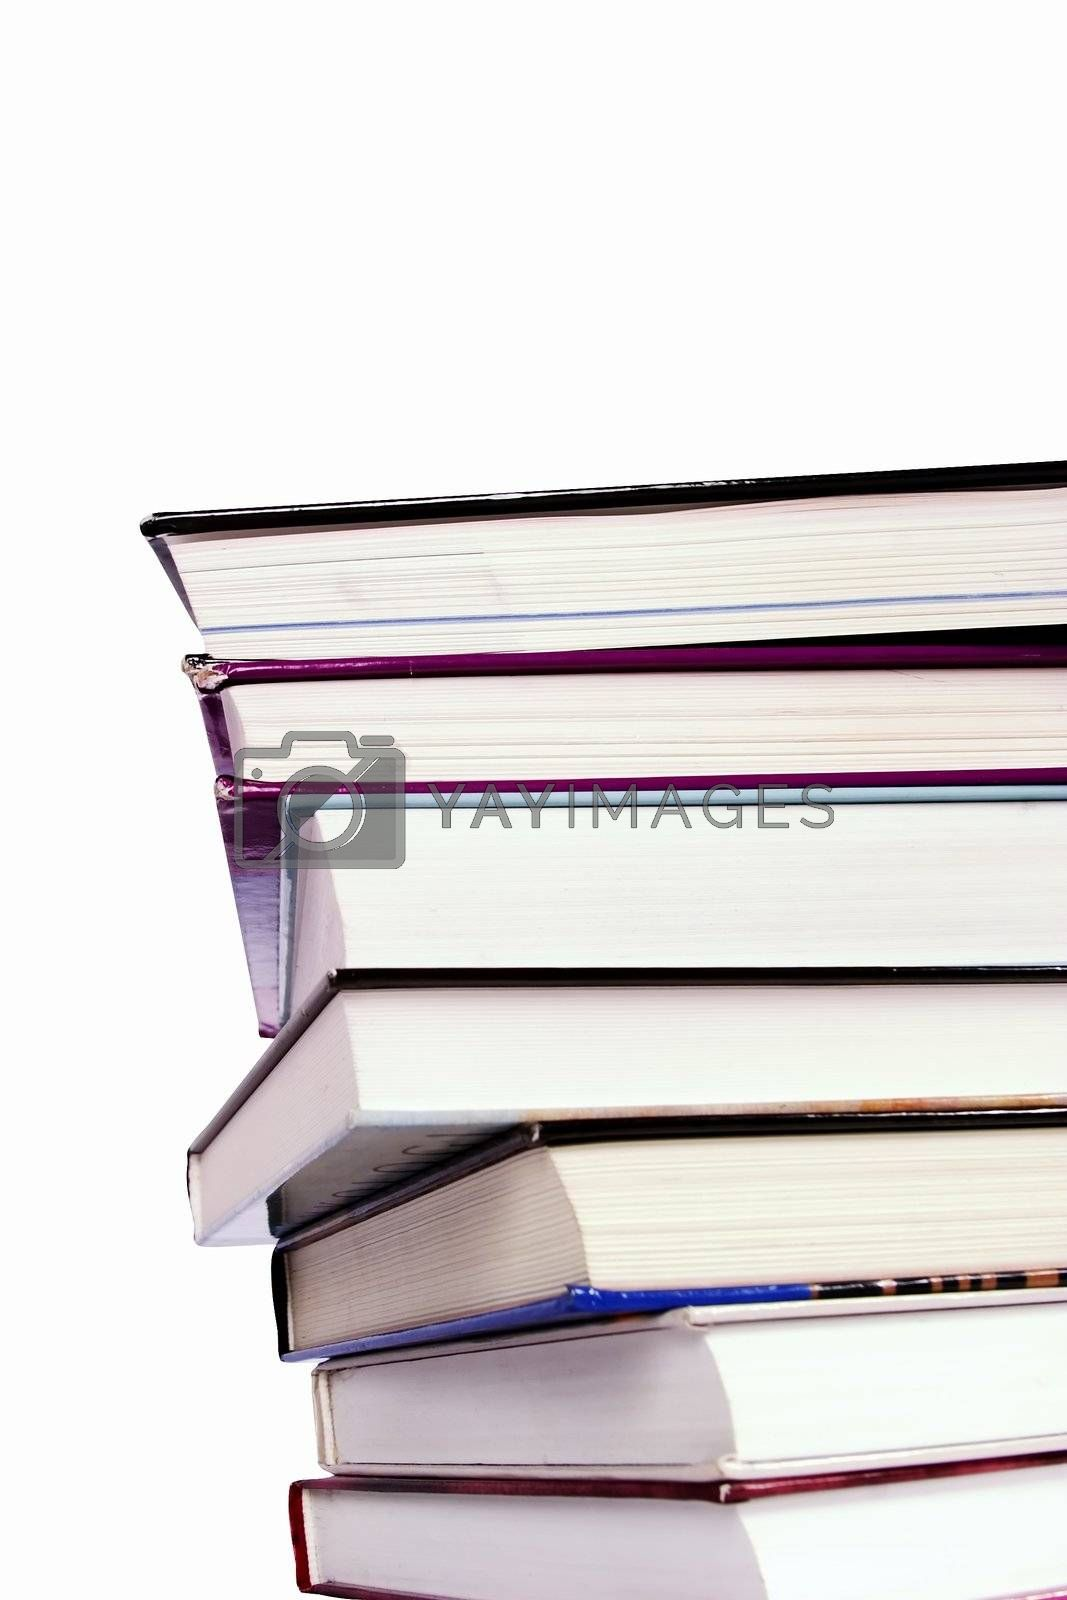 An endless stack of hard cover text books piled high, isolated on white.  Vantage point from below.